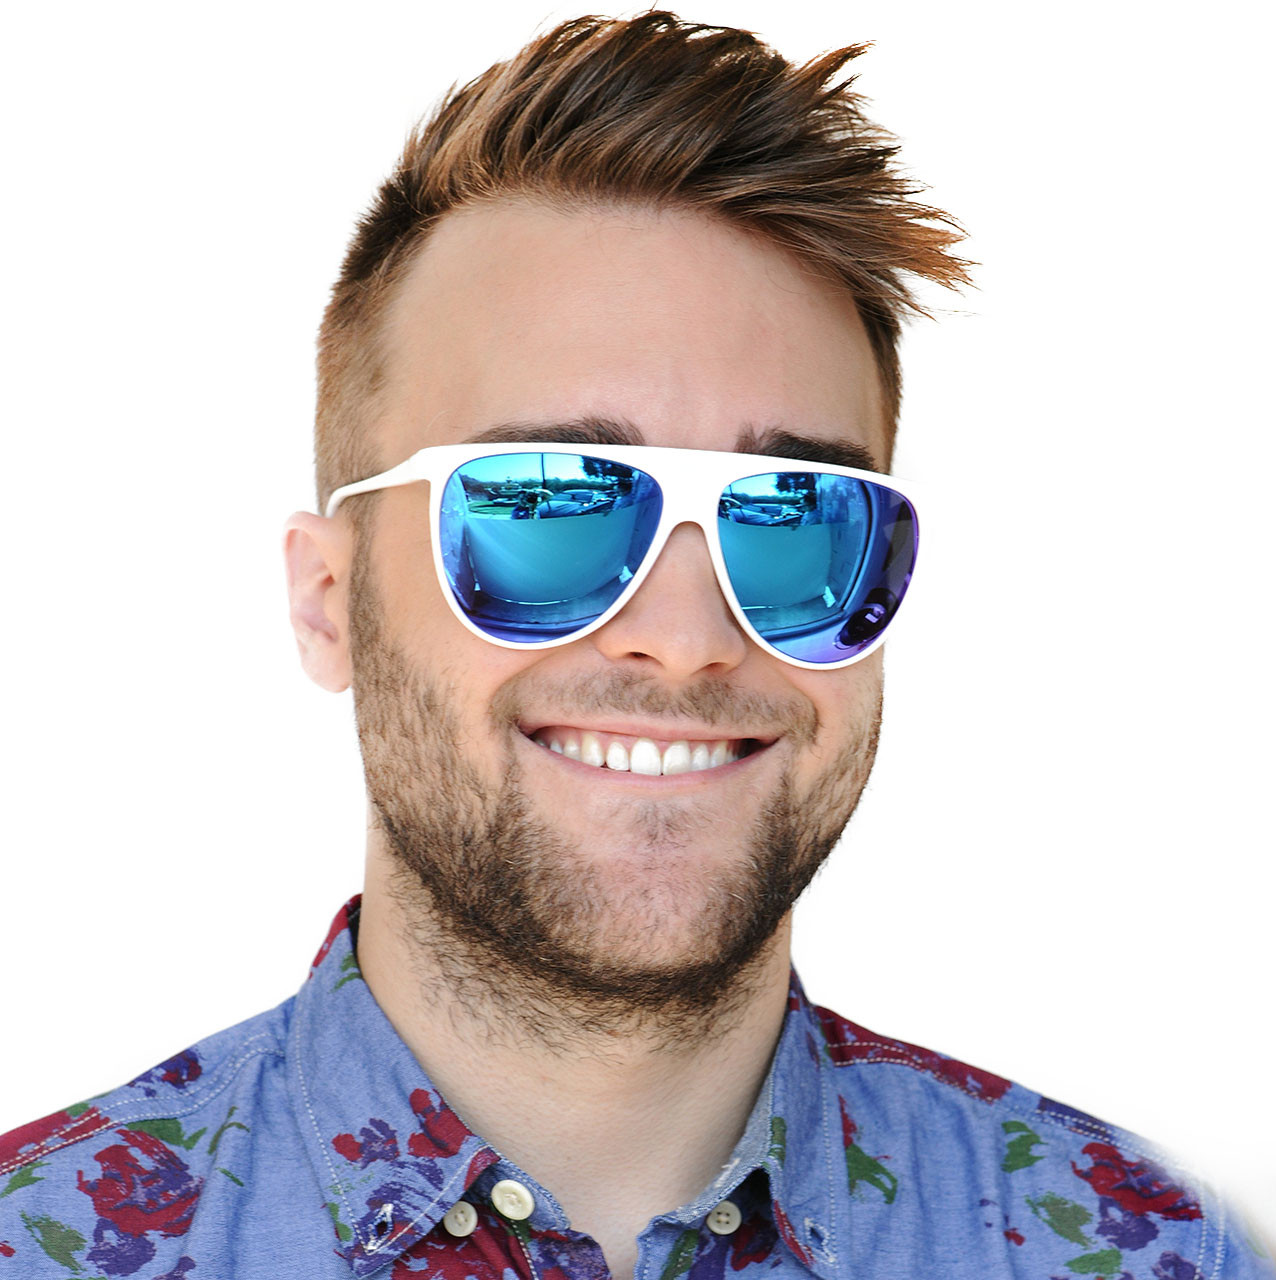 GEEK COUTURE Style MONTE CARLO Sunglasses